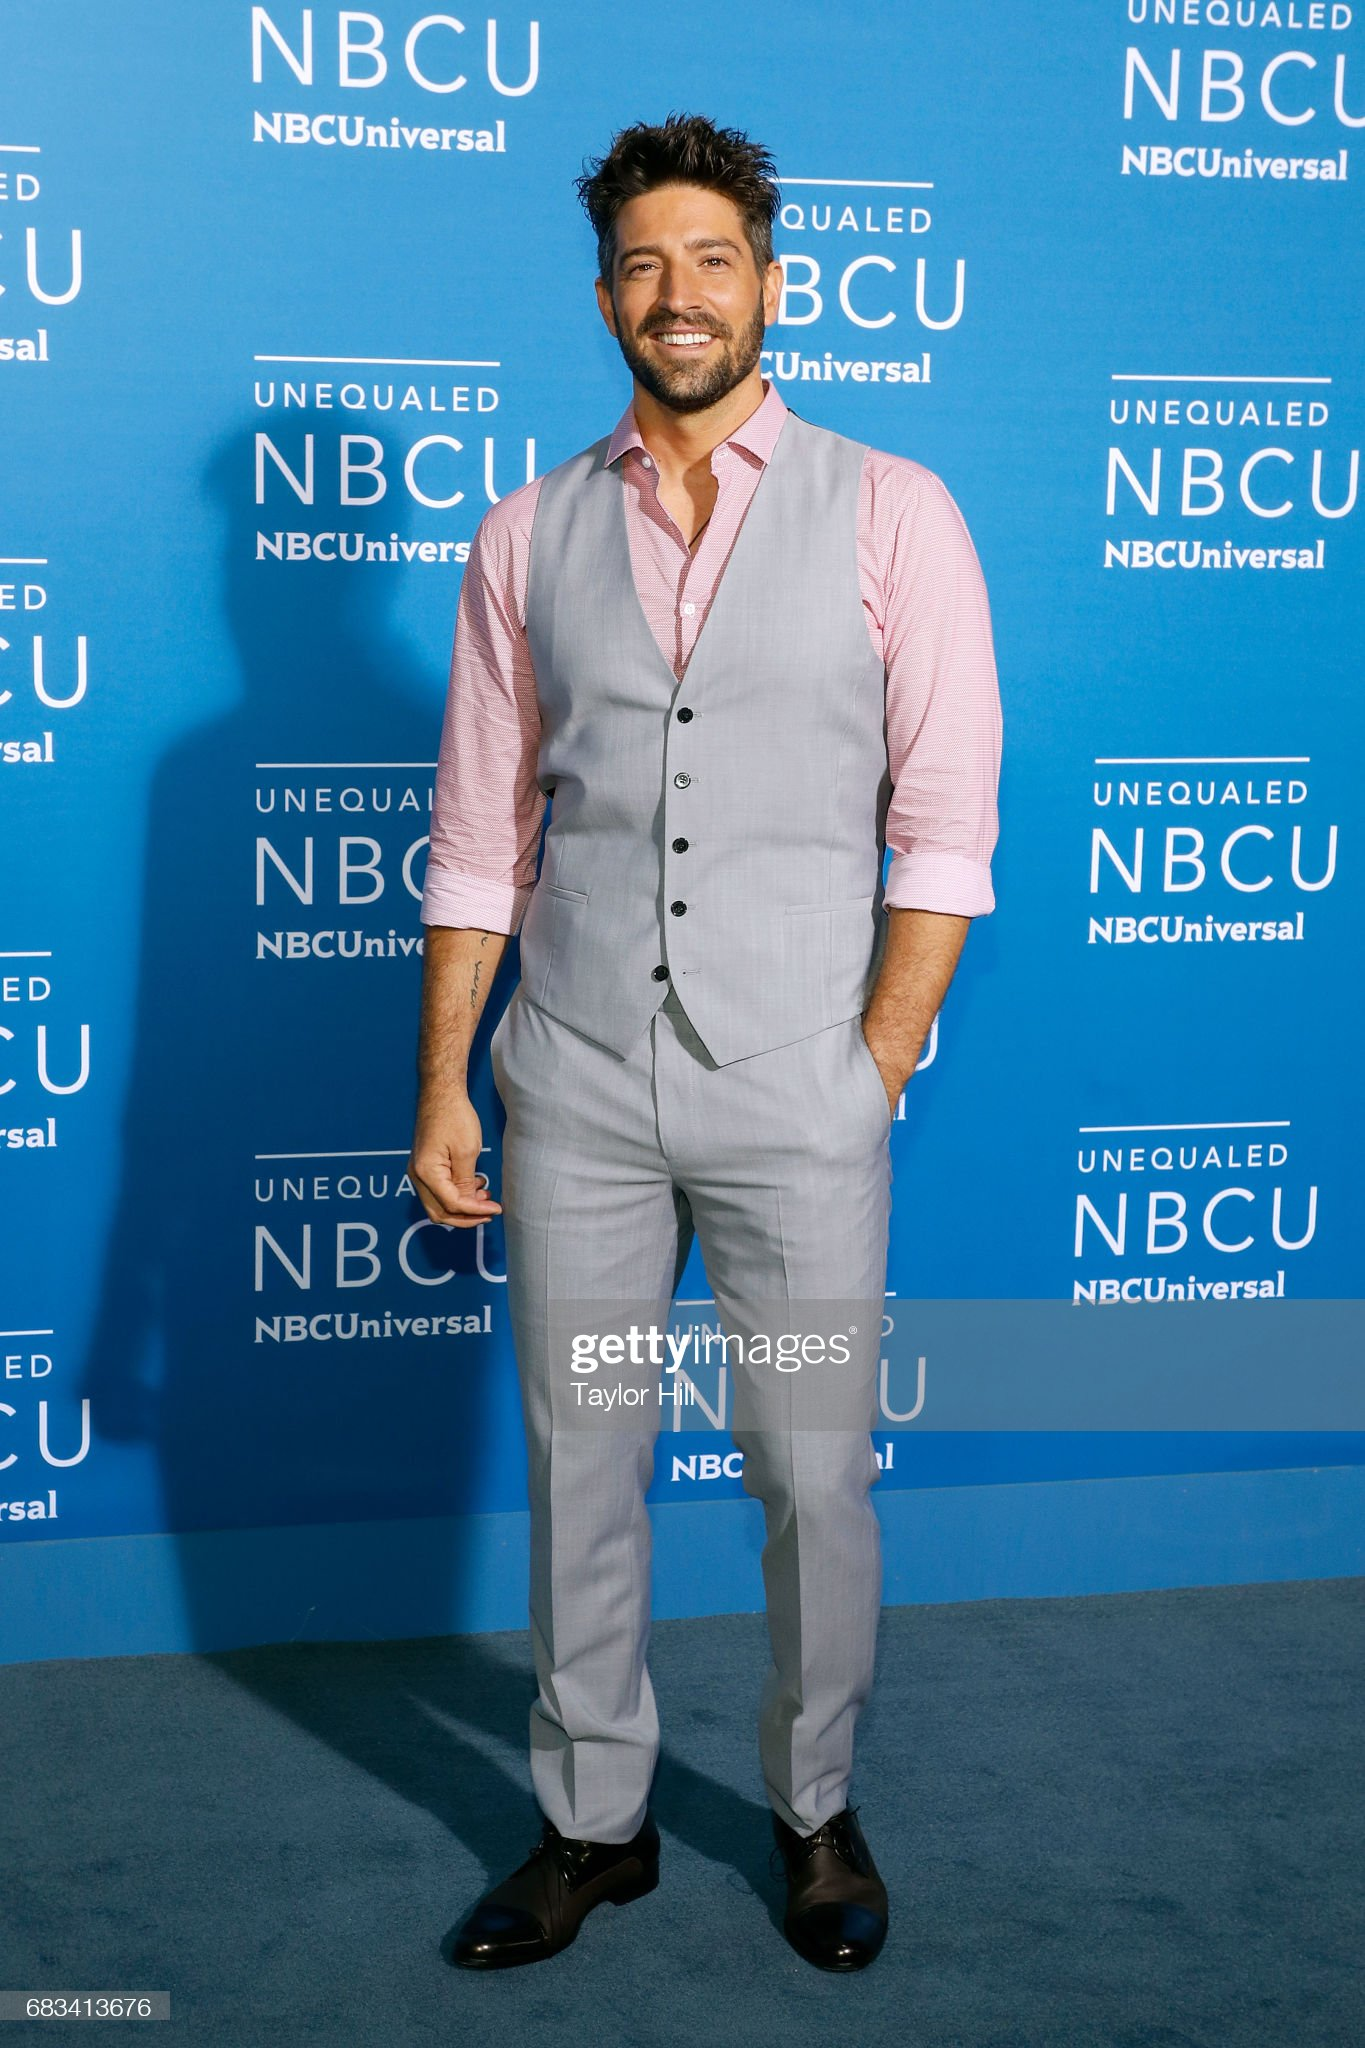 ¿Cuánto mide David Chocarro? - Altura - Real height David-chocarro-attends-the-2017-nbcuniversal-upfront-at-radio-city-picture-id683413676?s=2048x2048